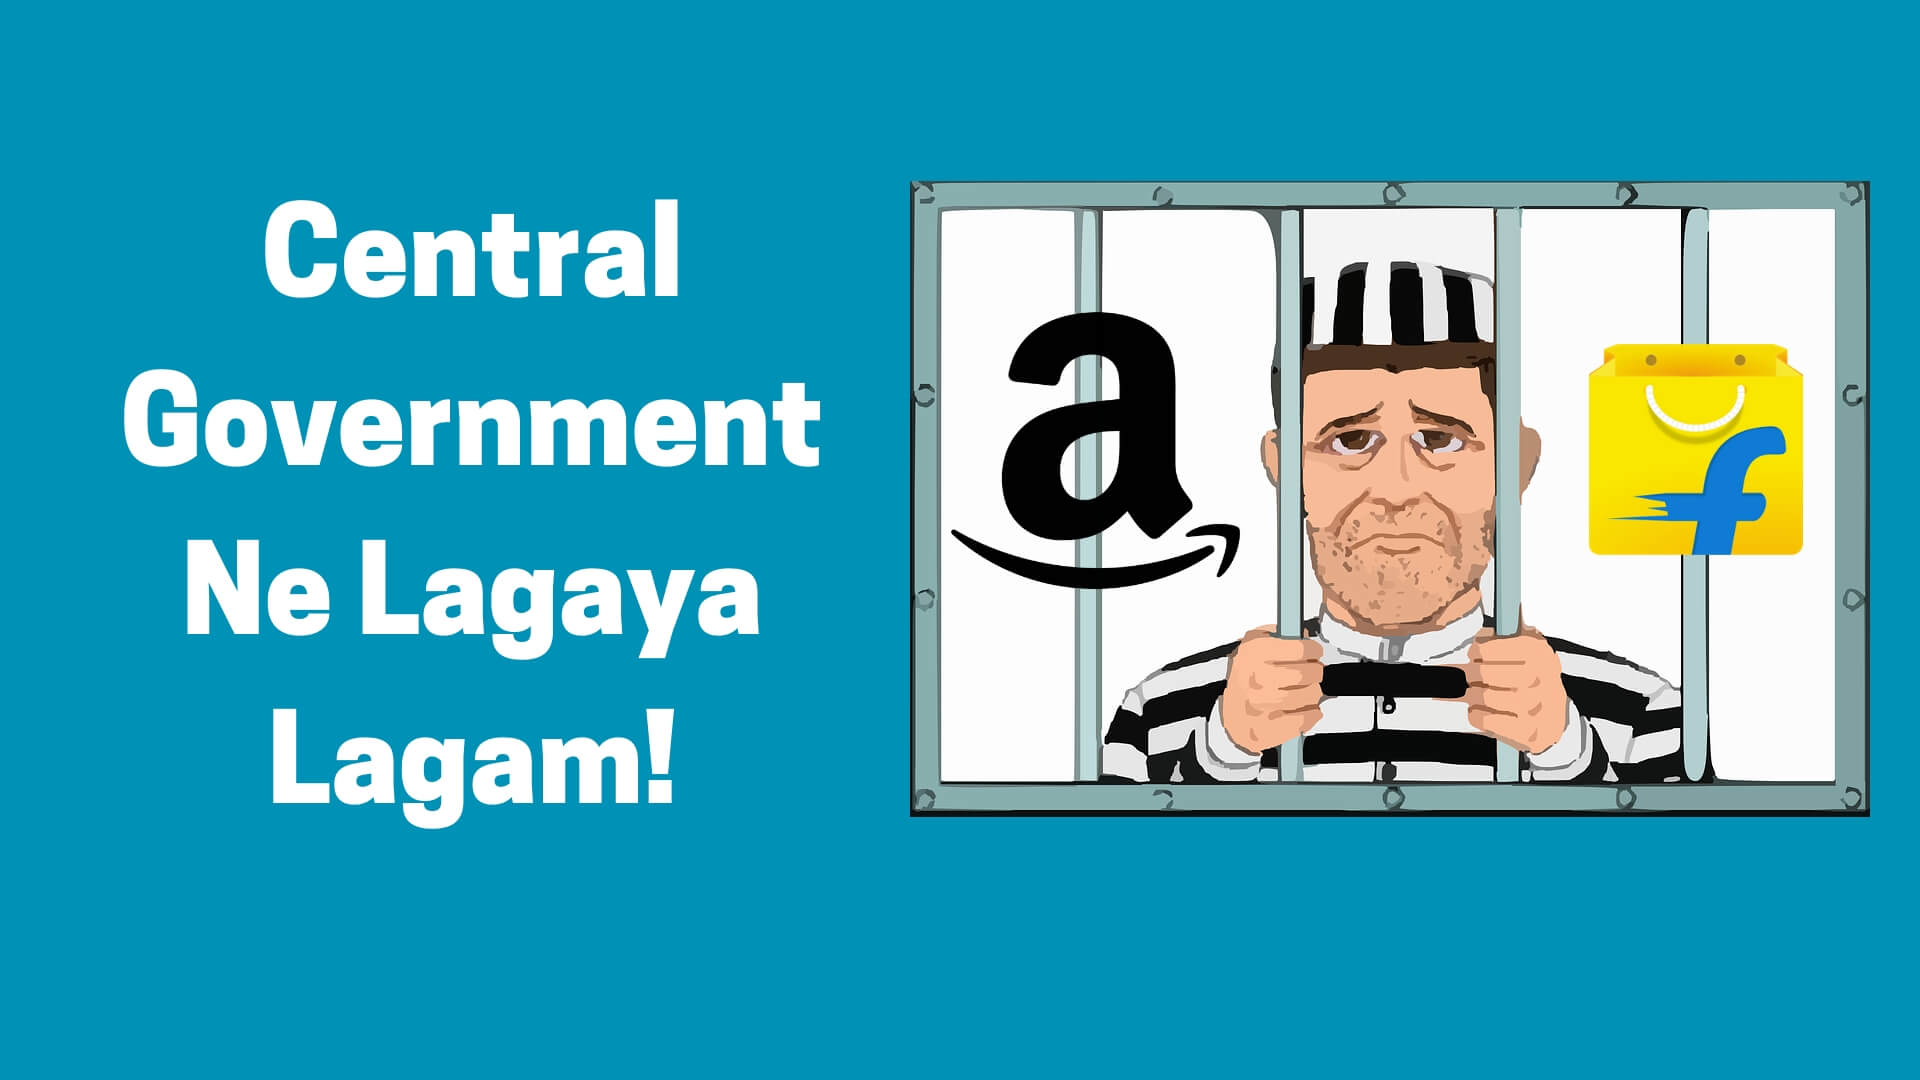 Central Government ने लगाया E-Commerce Websites पर लगाम